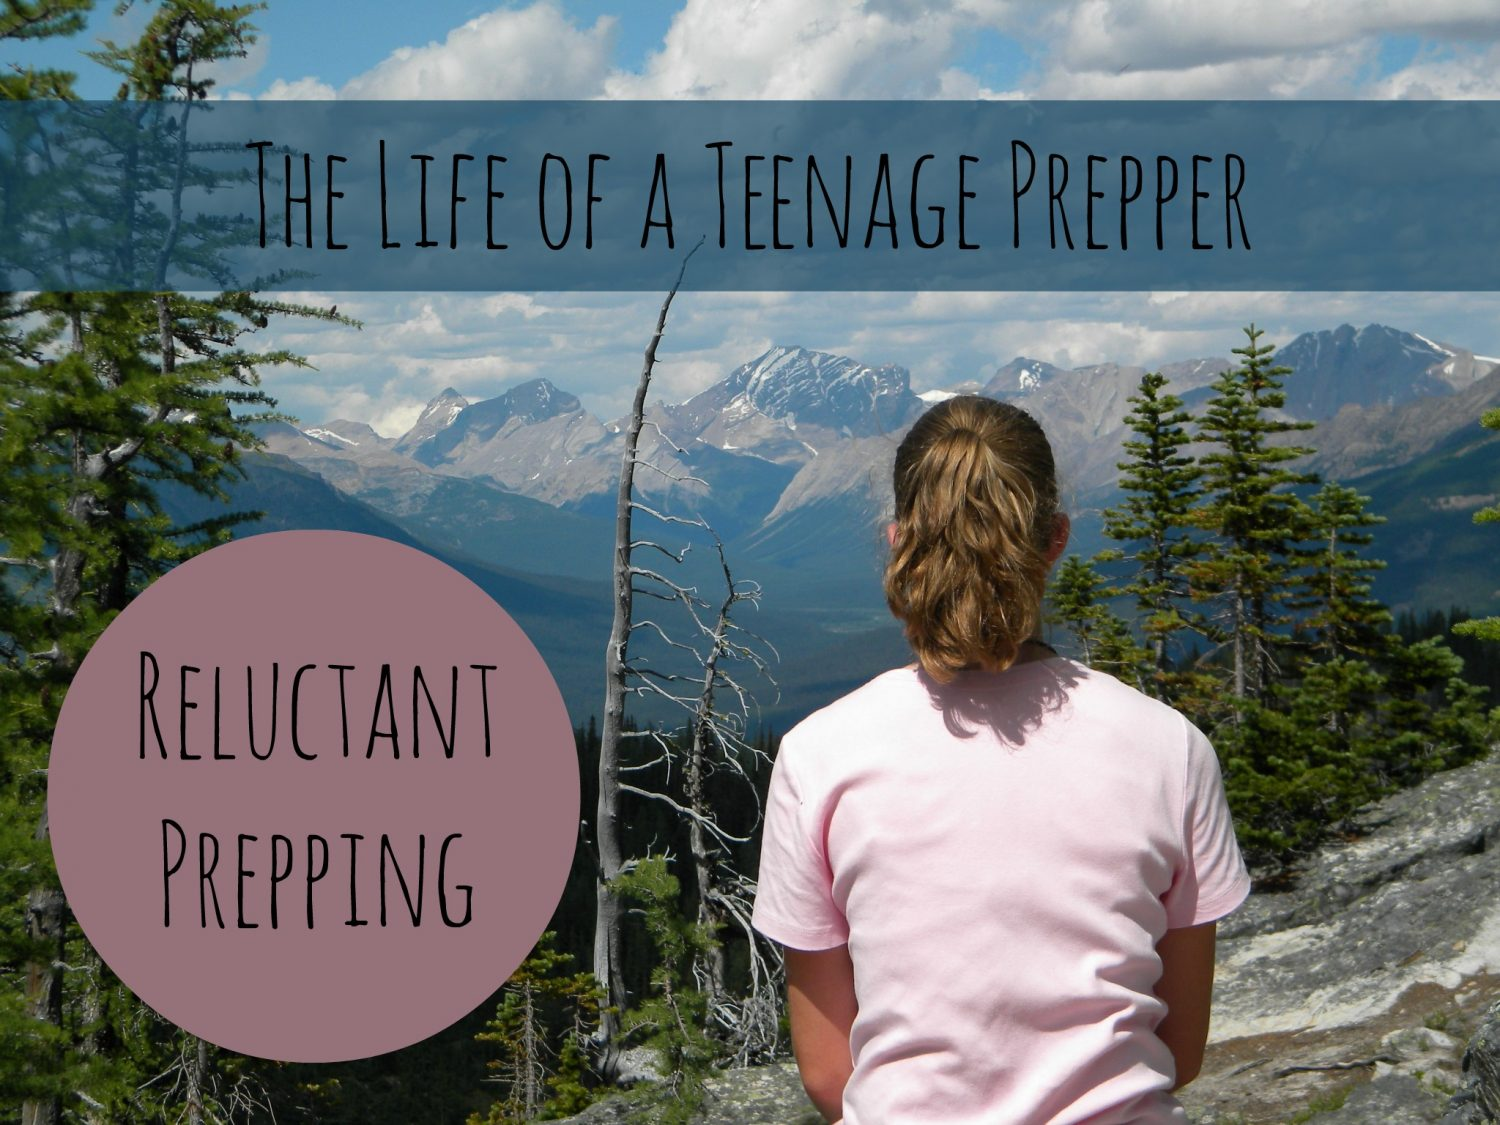 The Life of a Teenage Prepper: Reluctant Prepping